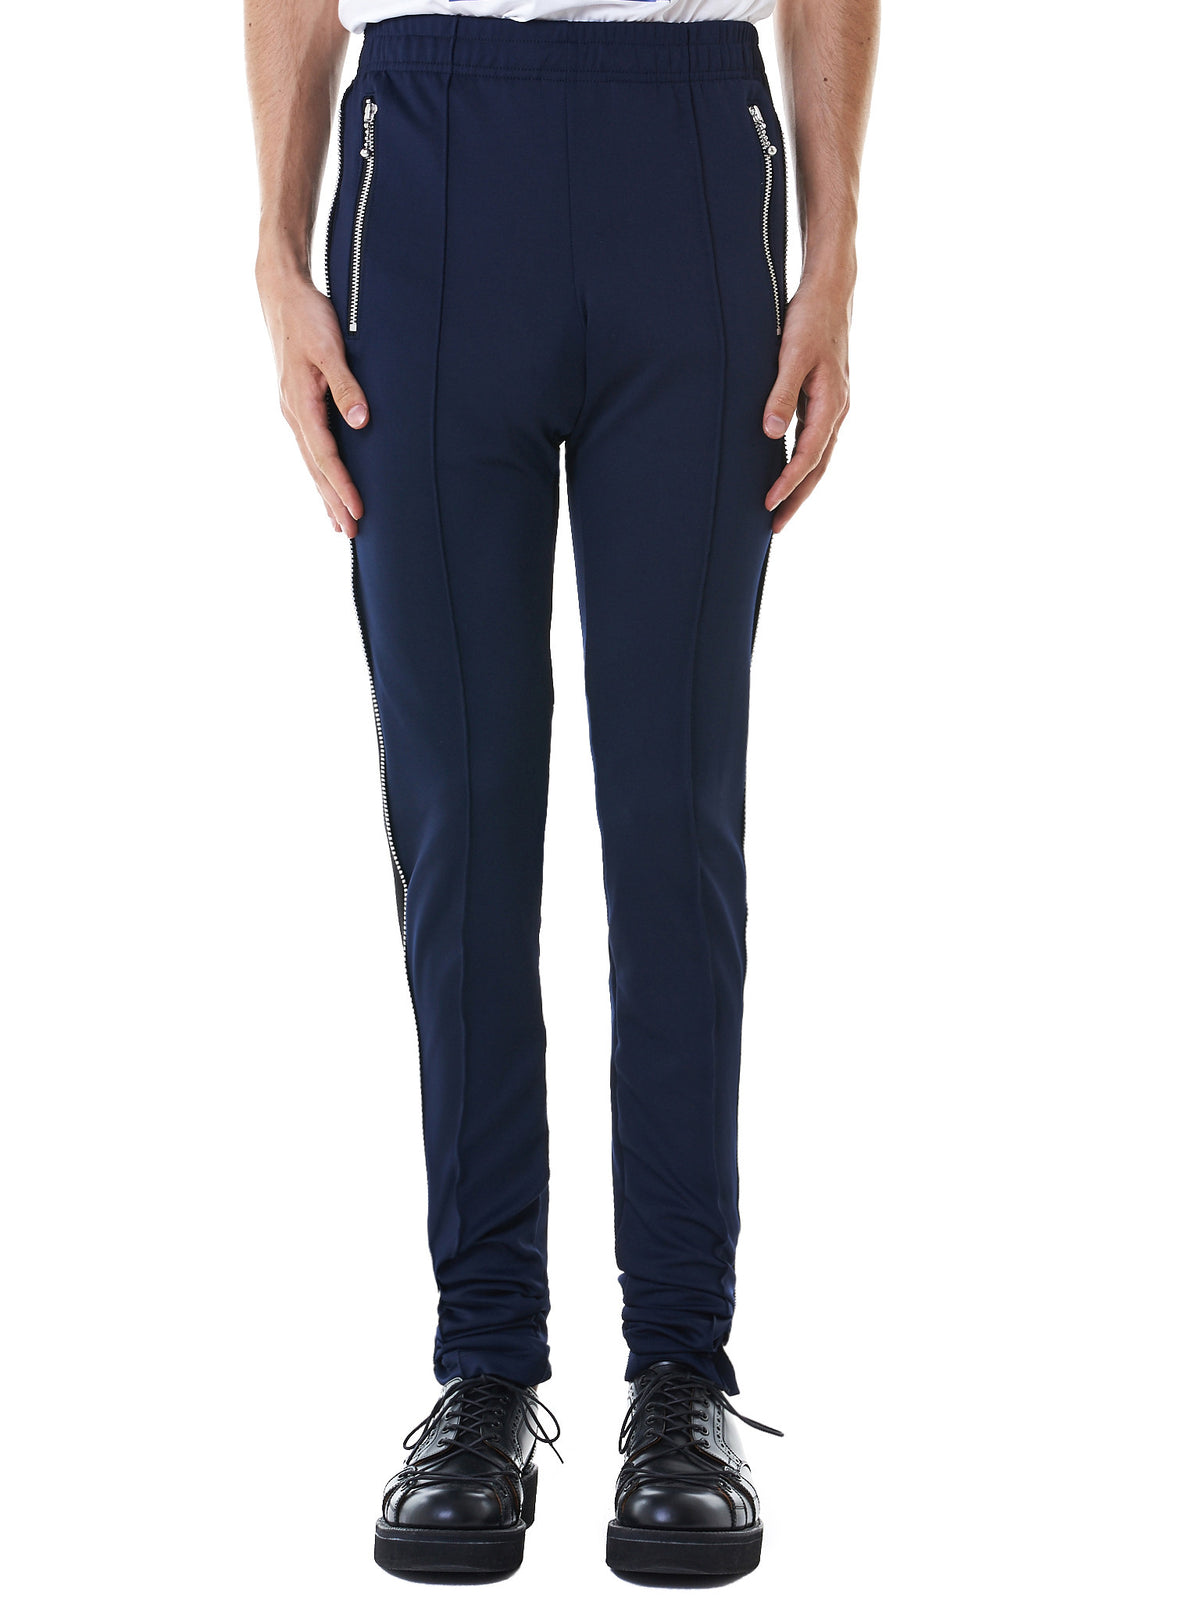 Striped Track Pants (NN10-PT10-A-NAVY-BLACK)